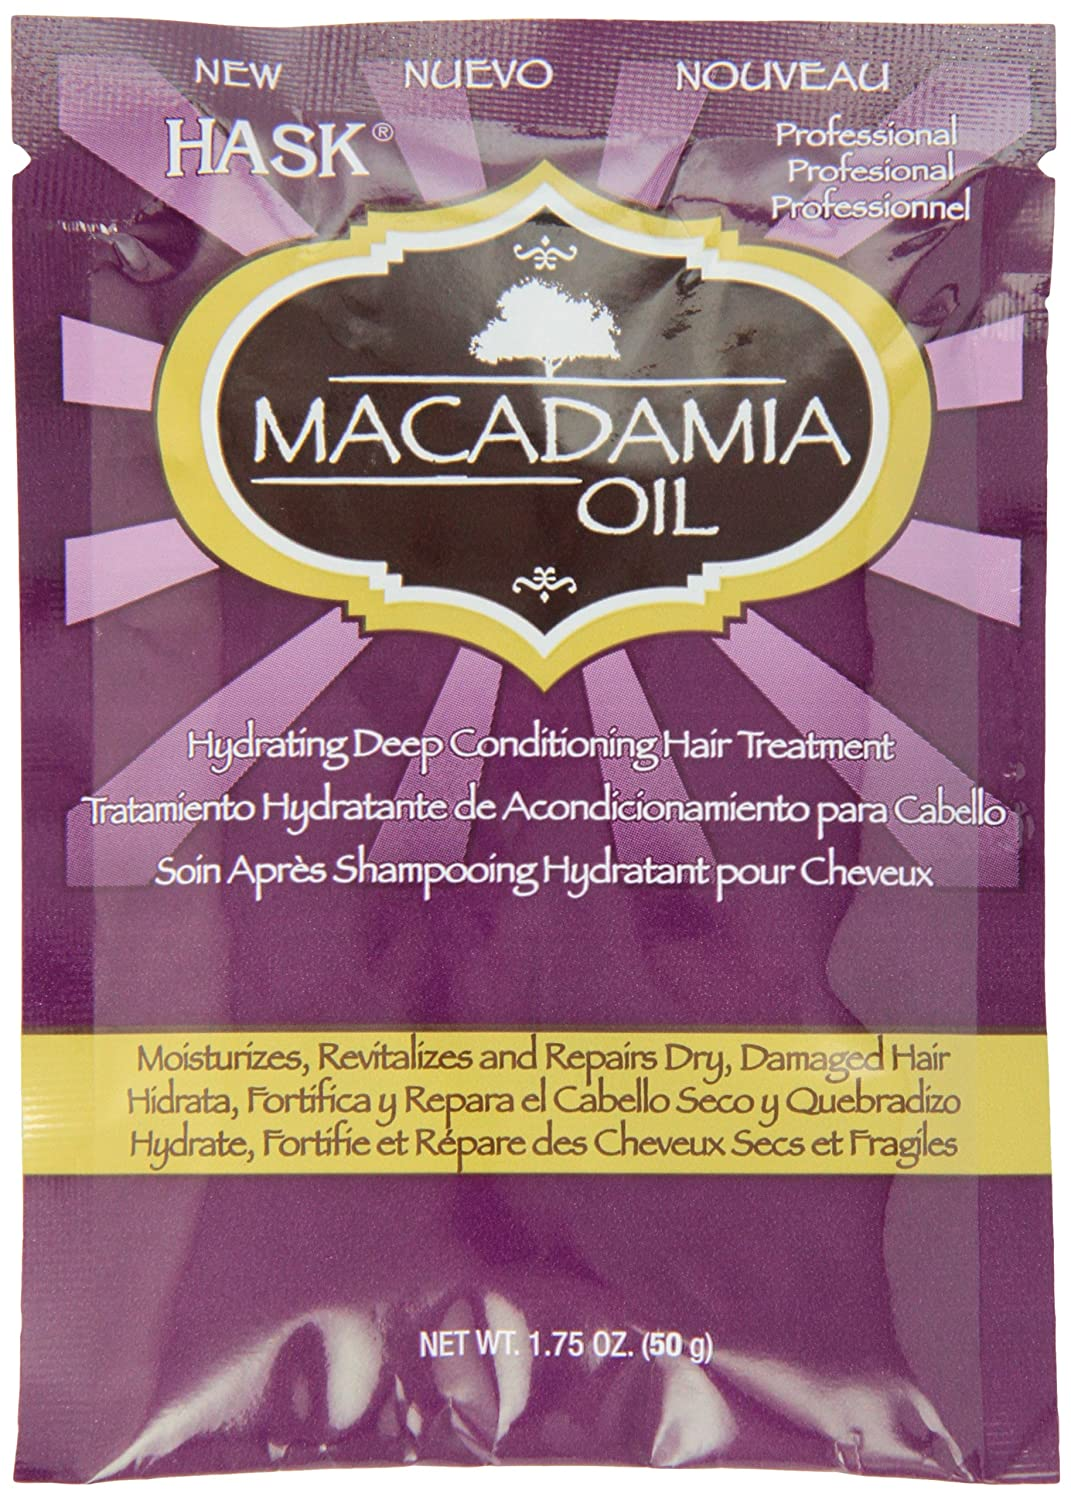 Hask Macadamia Oil Conditioning Packette 50g HA33305